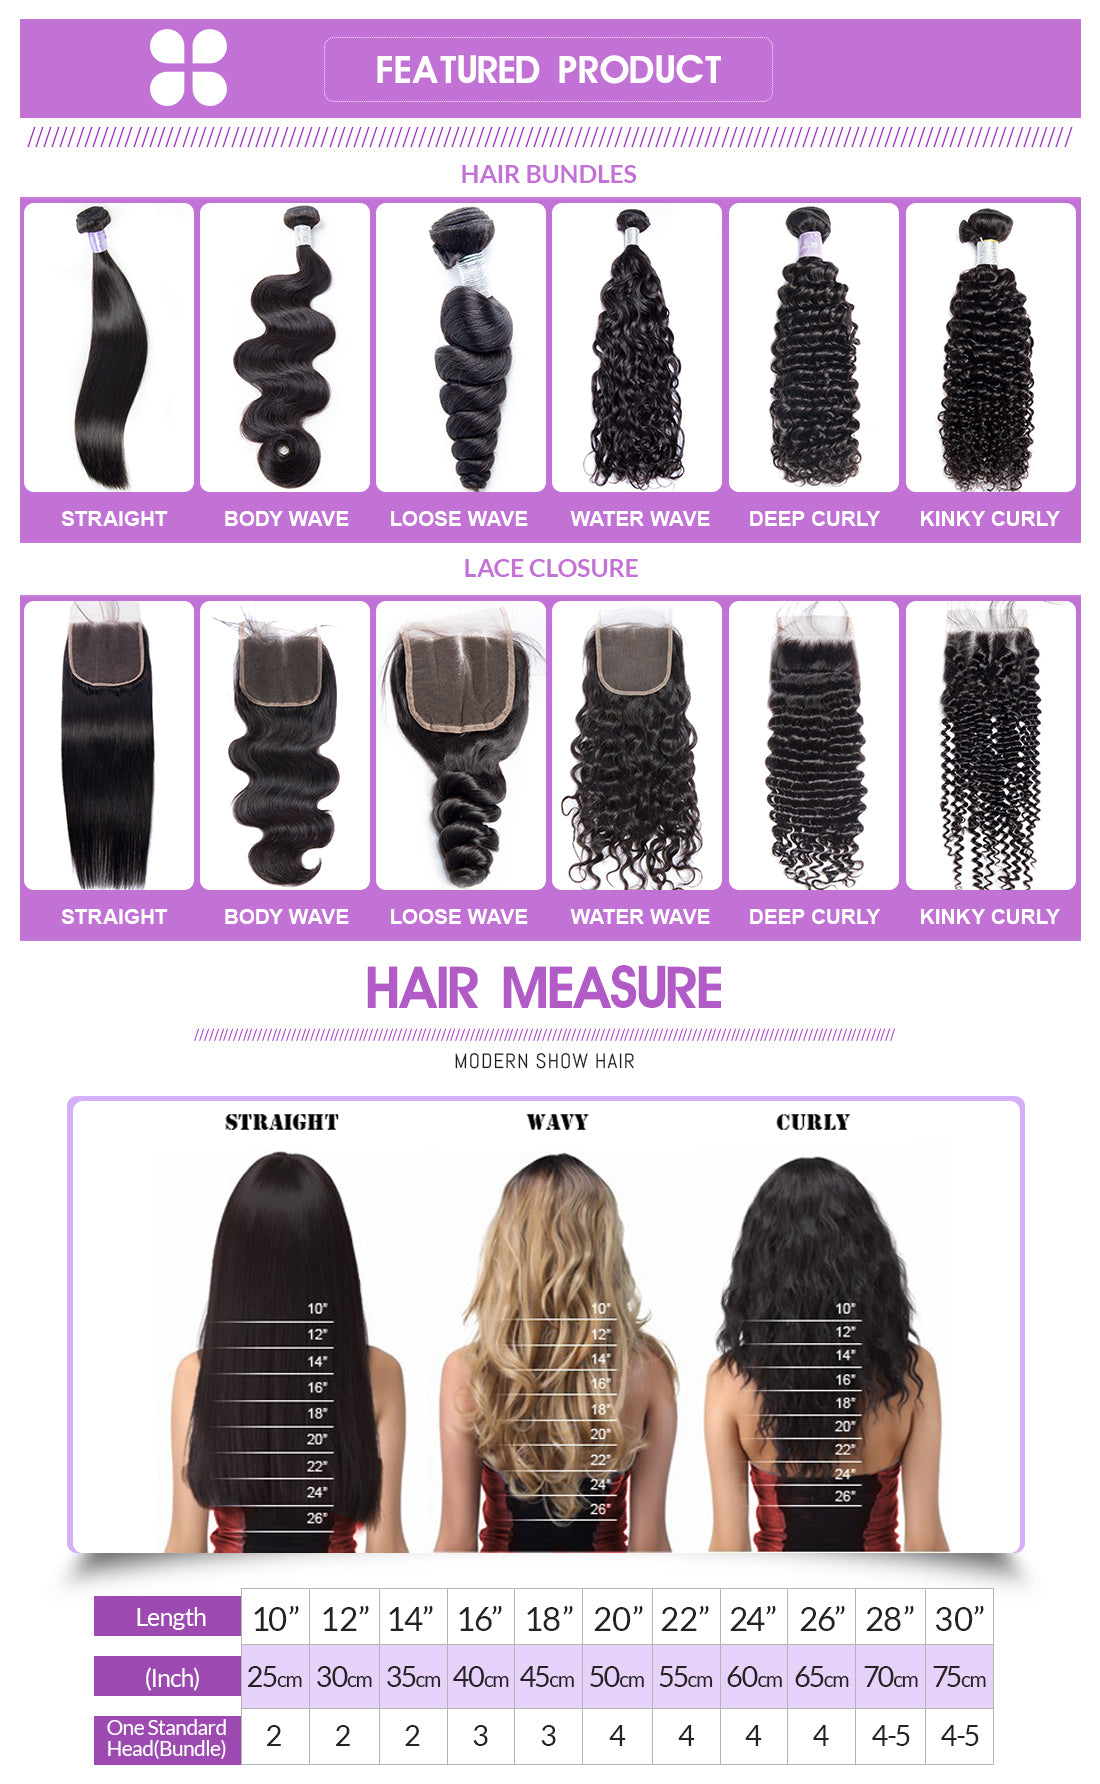 ms hair bundles new muban 1 in description